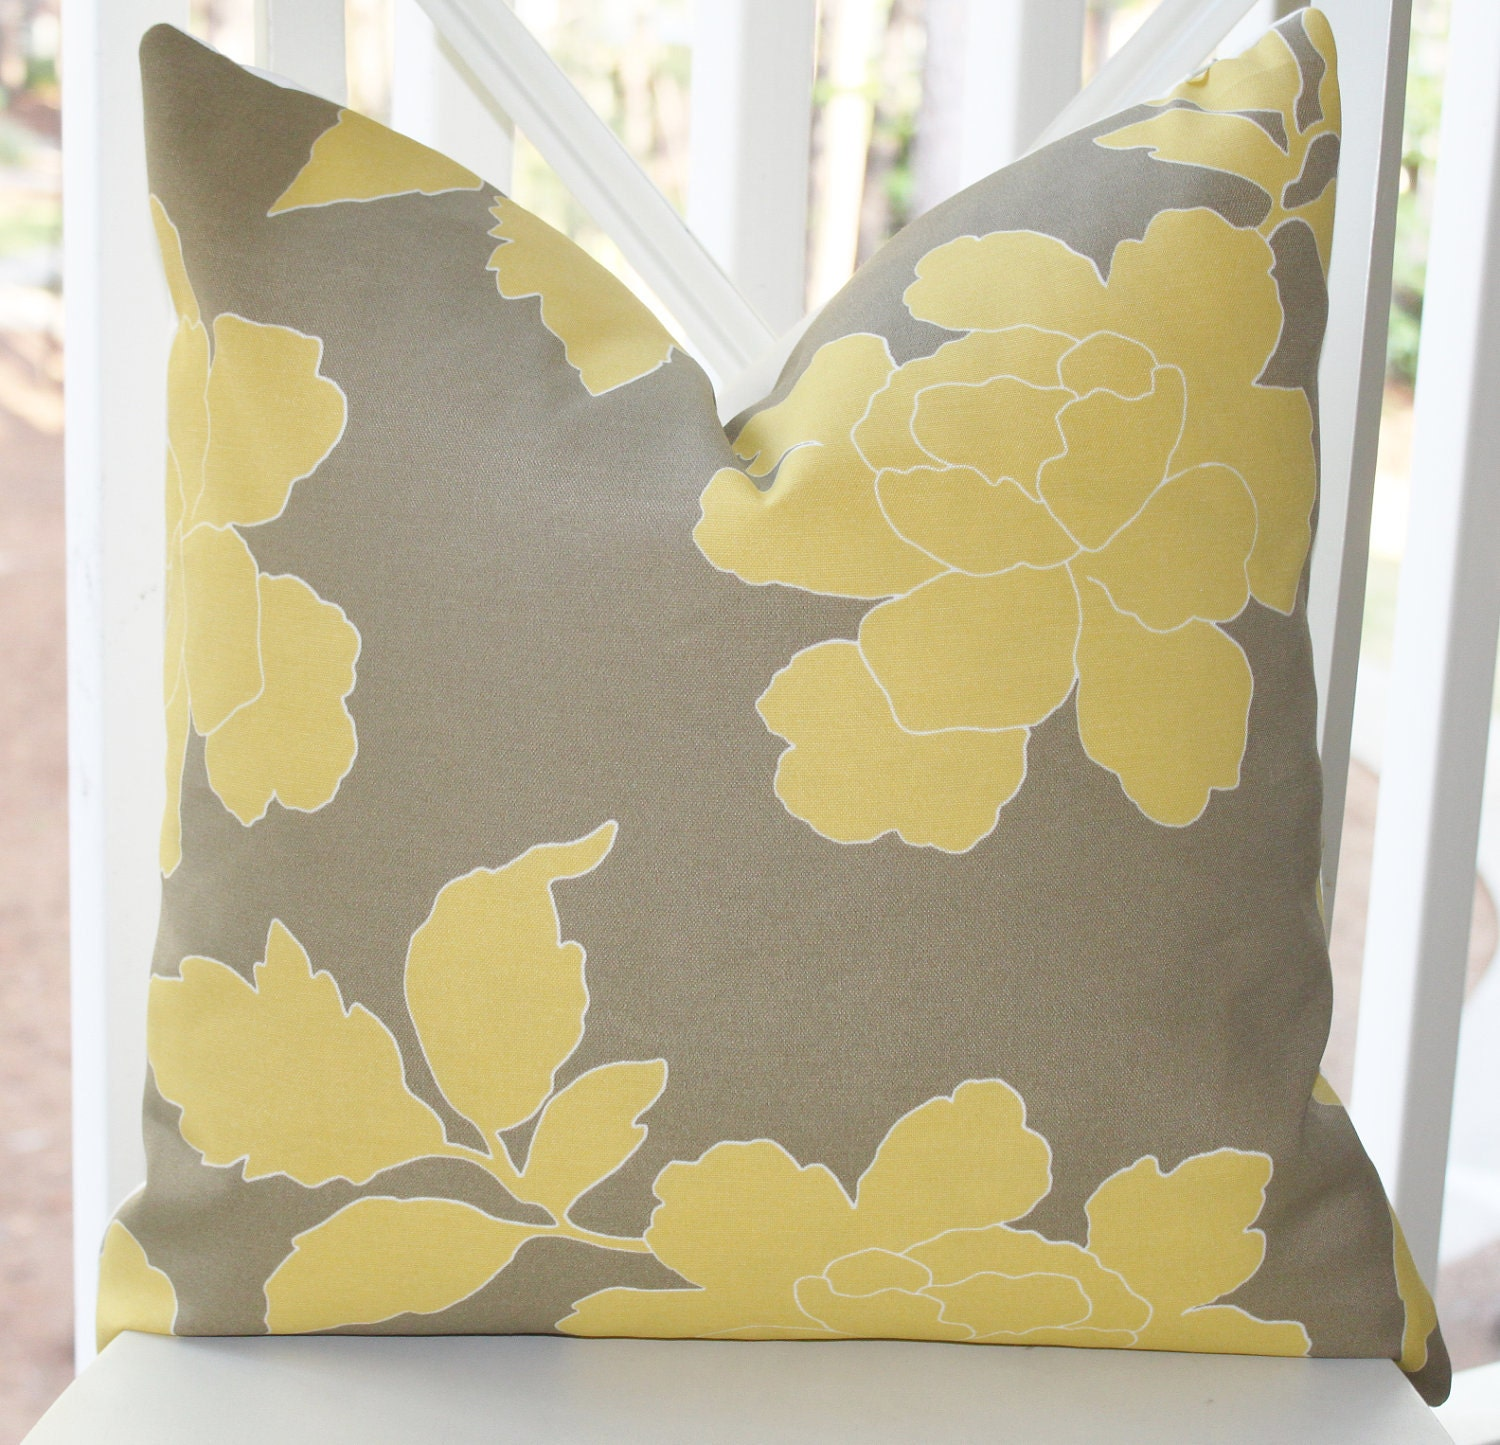 Yellow And Grey Throw Pillow Covers : Decorative Pillow Cover Yellow Grey Dwell Studio Pillow Cover